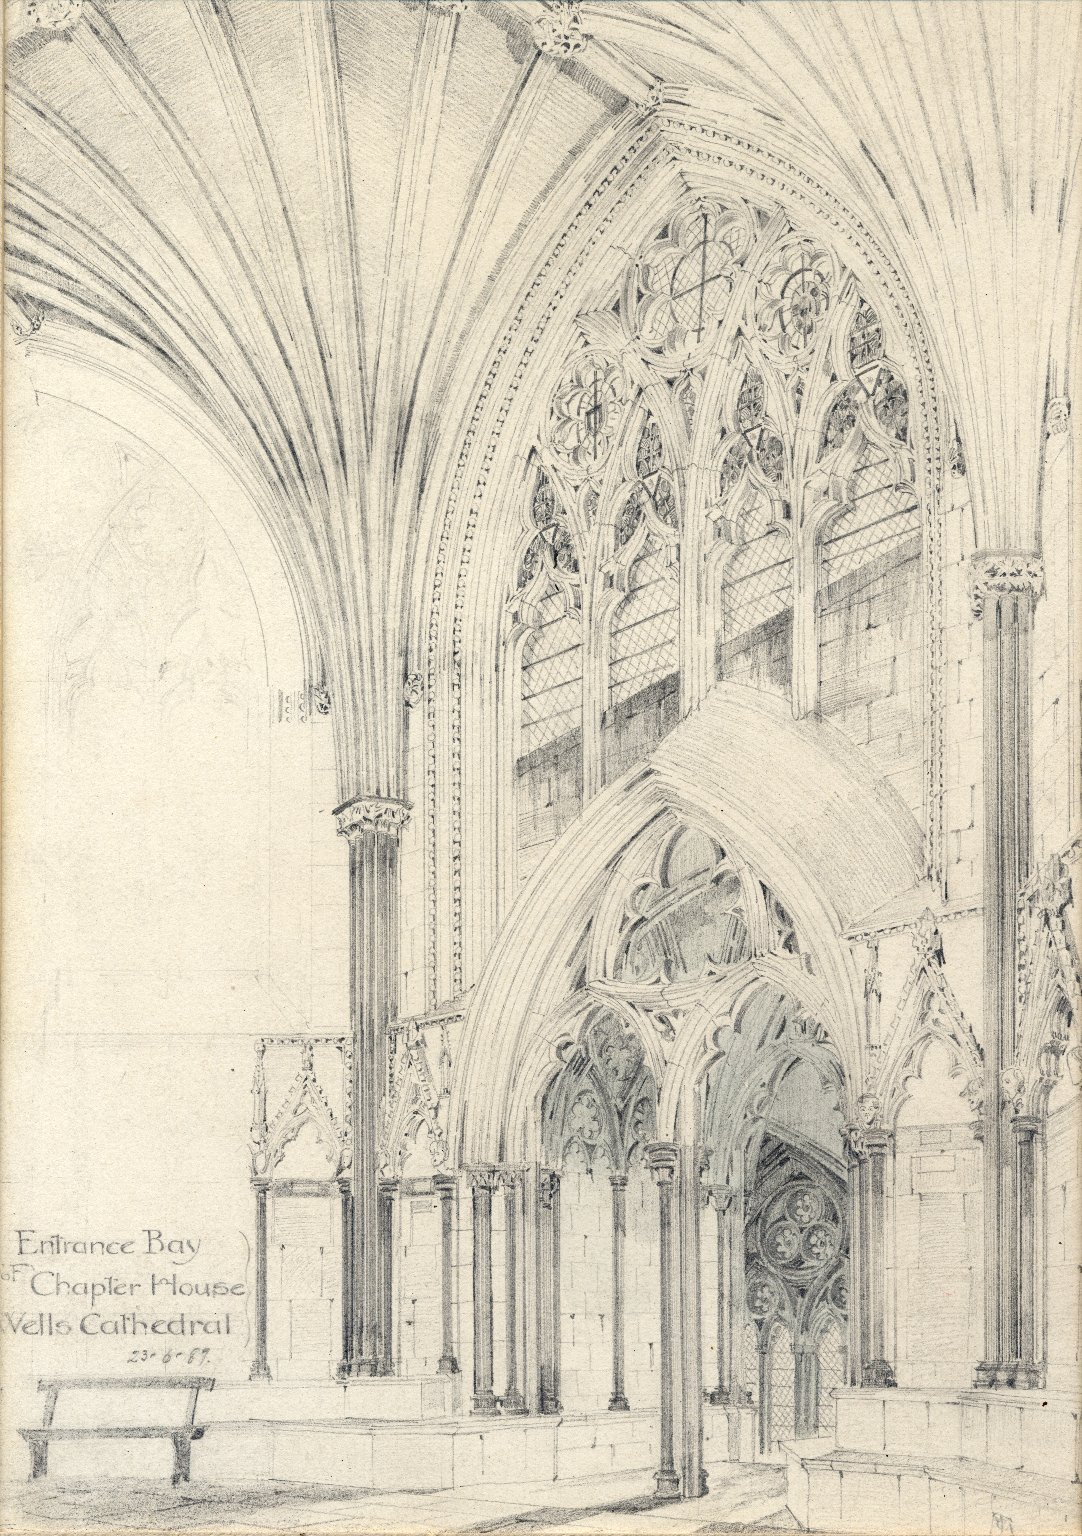 Entry to the Chapter House of Wells Cathedral